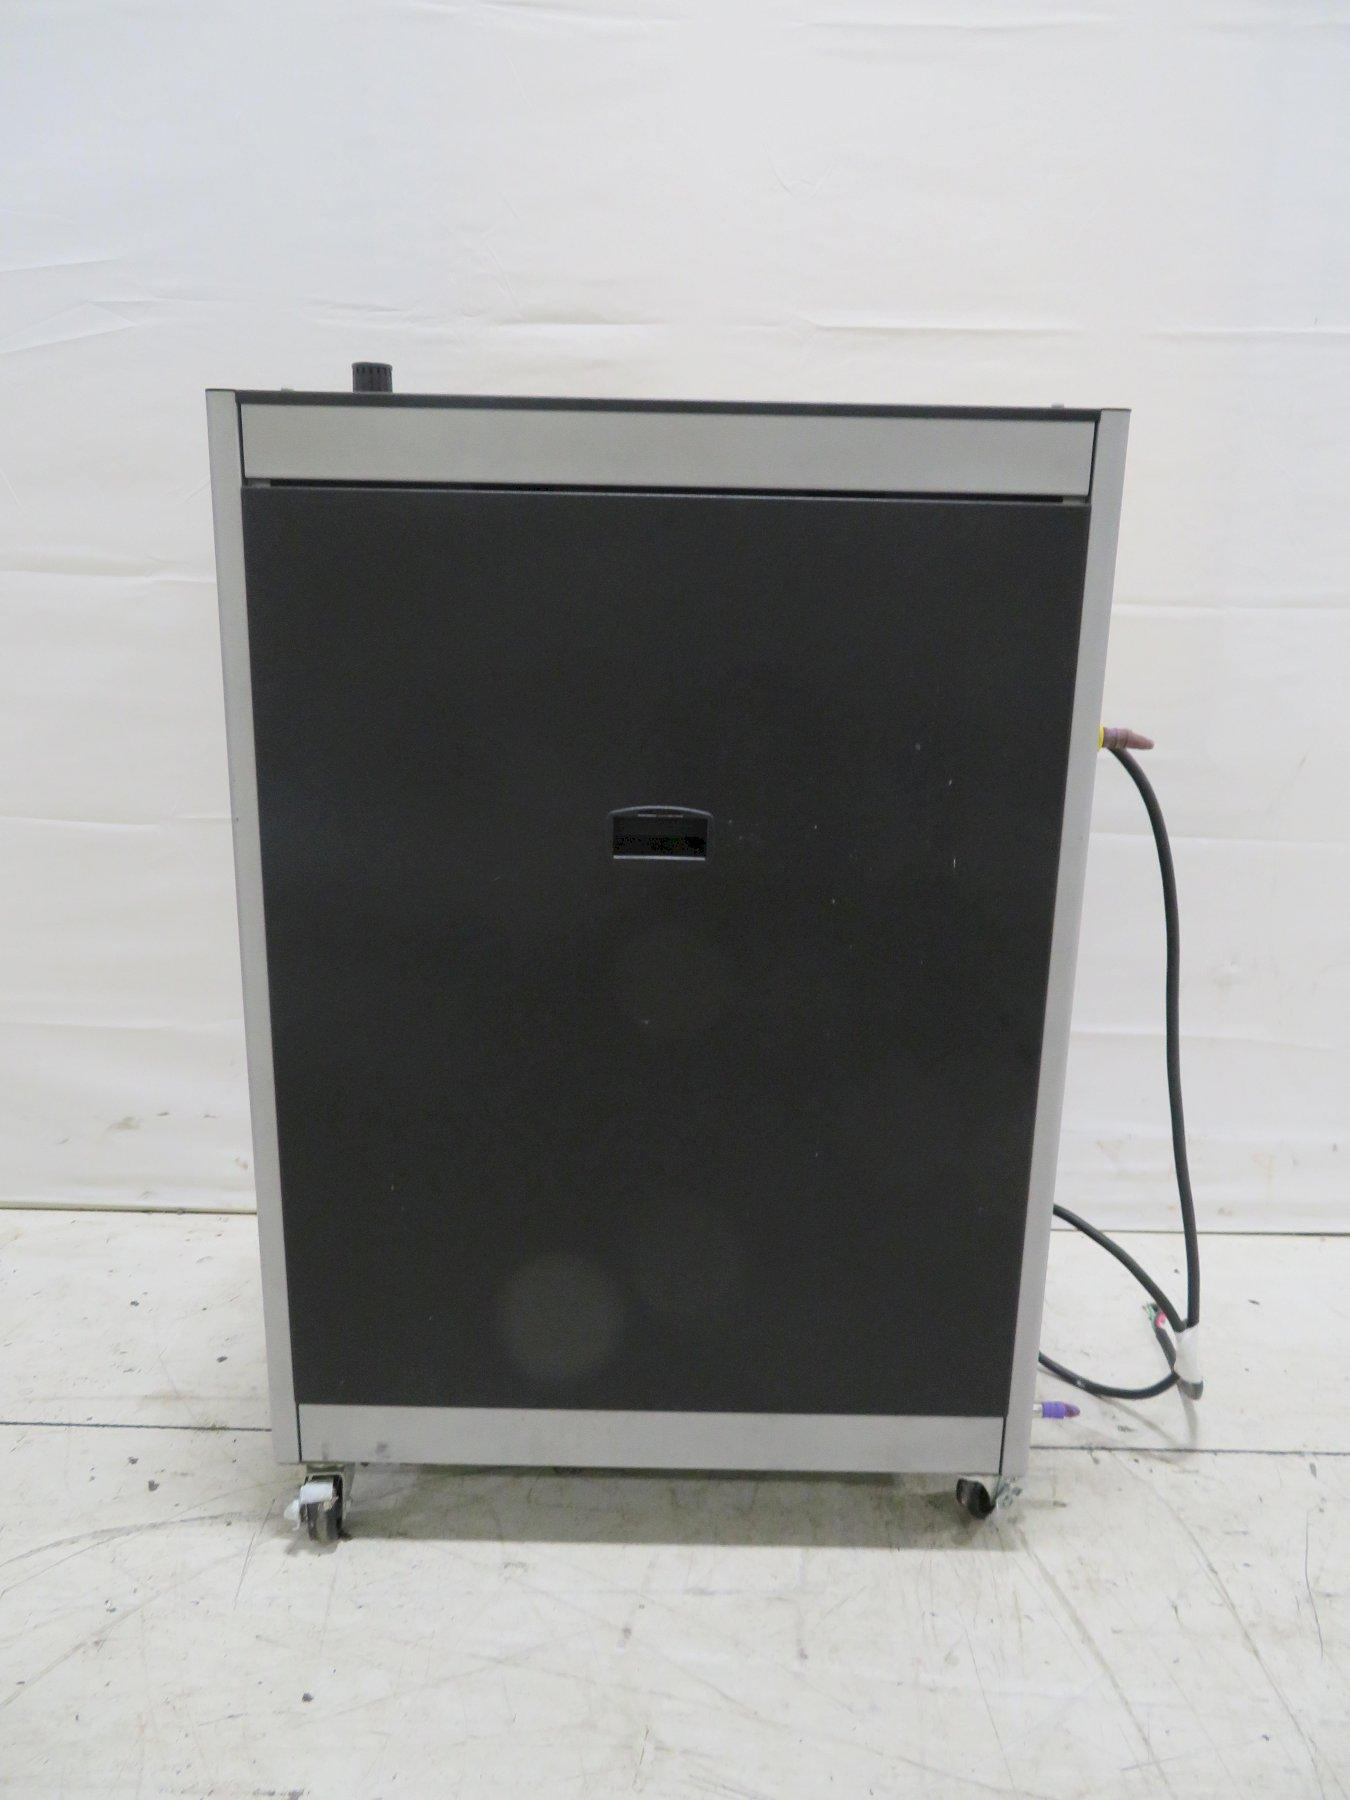 Delta T Used VSP-003 Portable Water Chiller, 3kw, 1hp, 230V, Yr. 2017